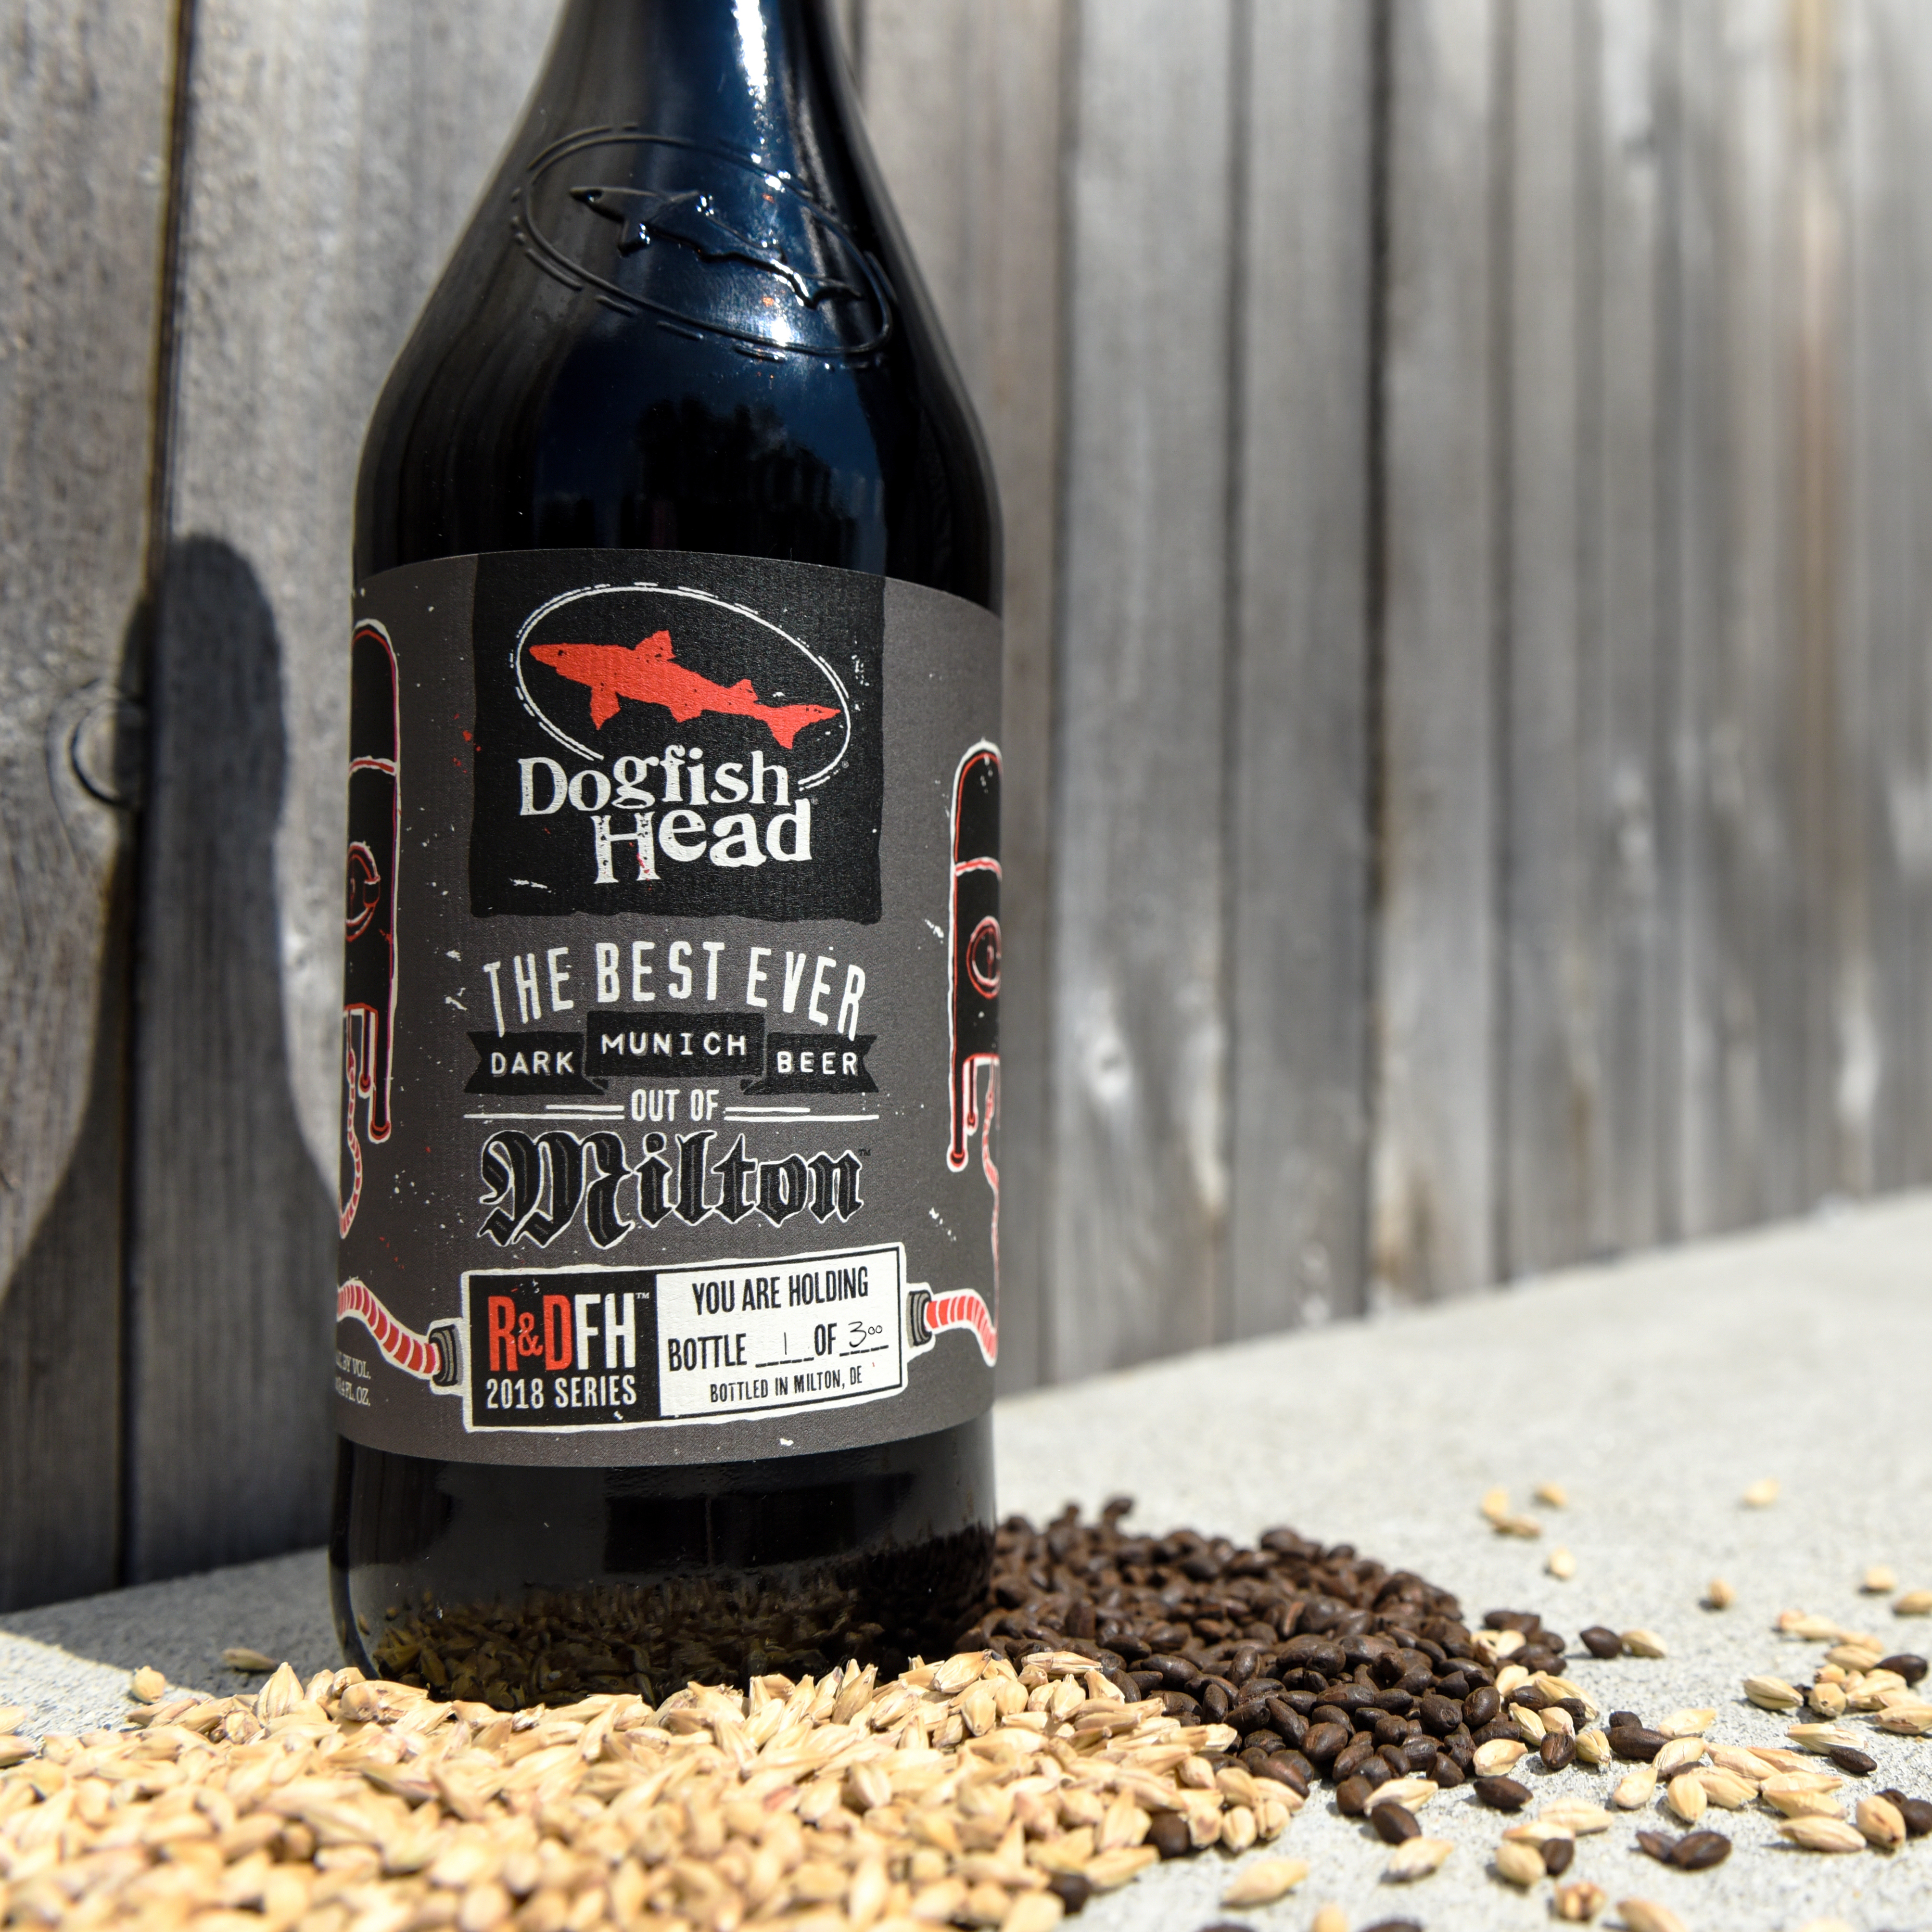 the best ever dark munich beer out of milton limited bottle release